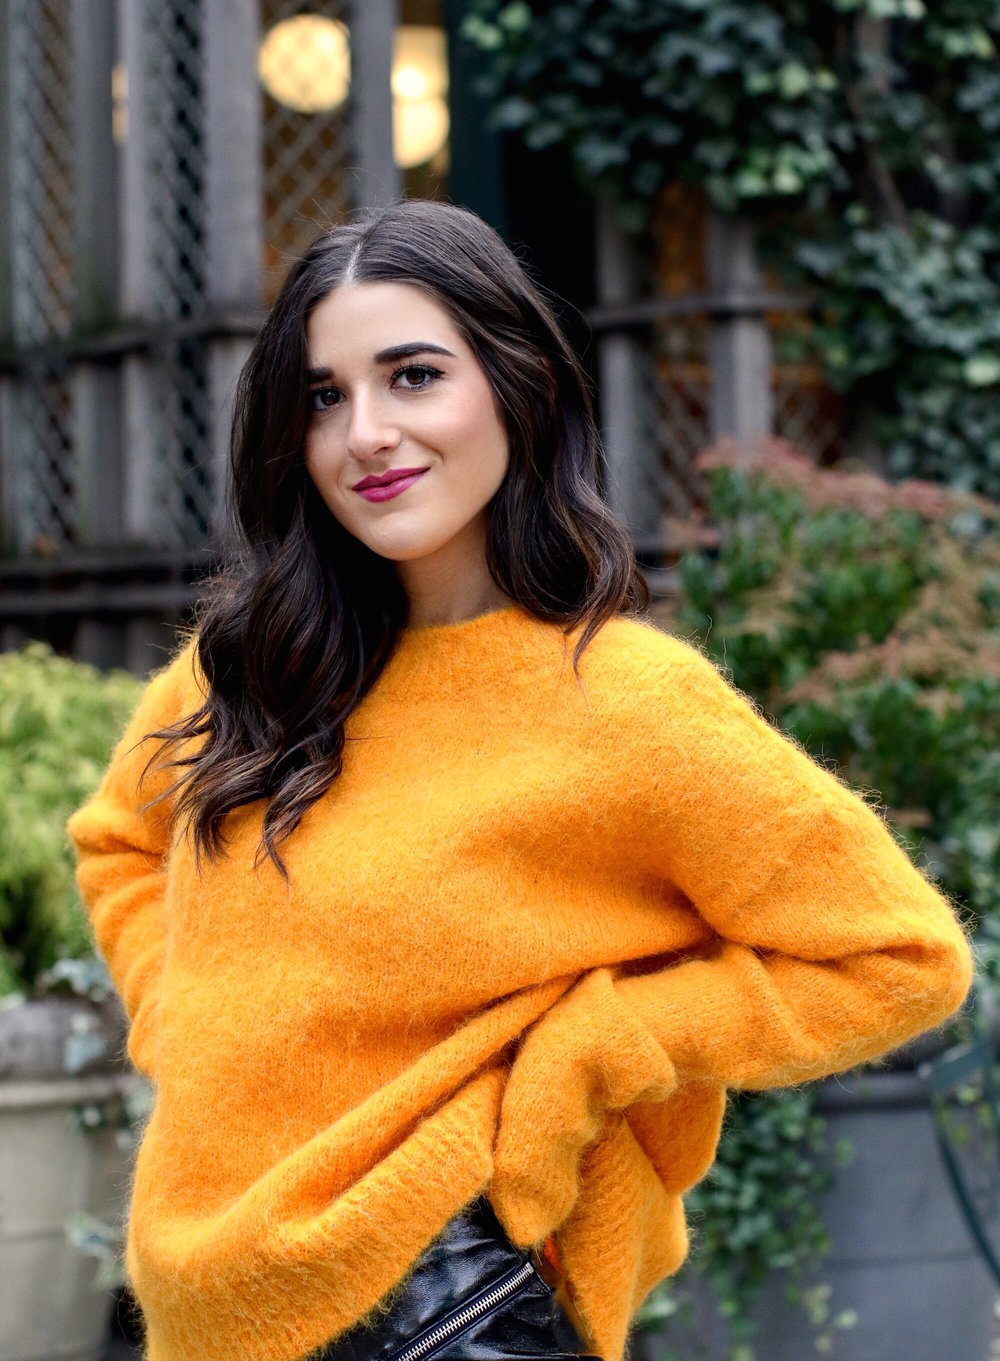 Yellow Sweater Pleather Skirt Why You Should Think Before You Unfollow Esther Santer Fashion Blog NYC Street Style Blogger Outfit OOTD Trendy Cozy Winter Look Girl Women Oversized Top New York City Instagram Tips DSW Studded Boots H&M Topshop Details.jpg